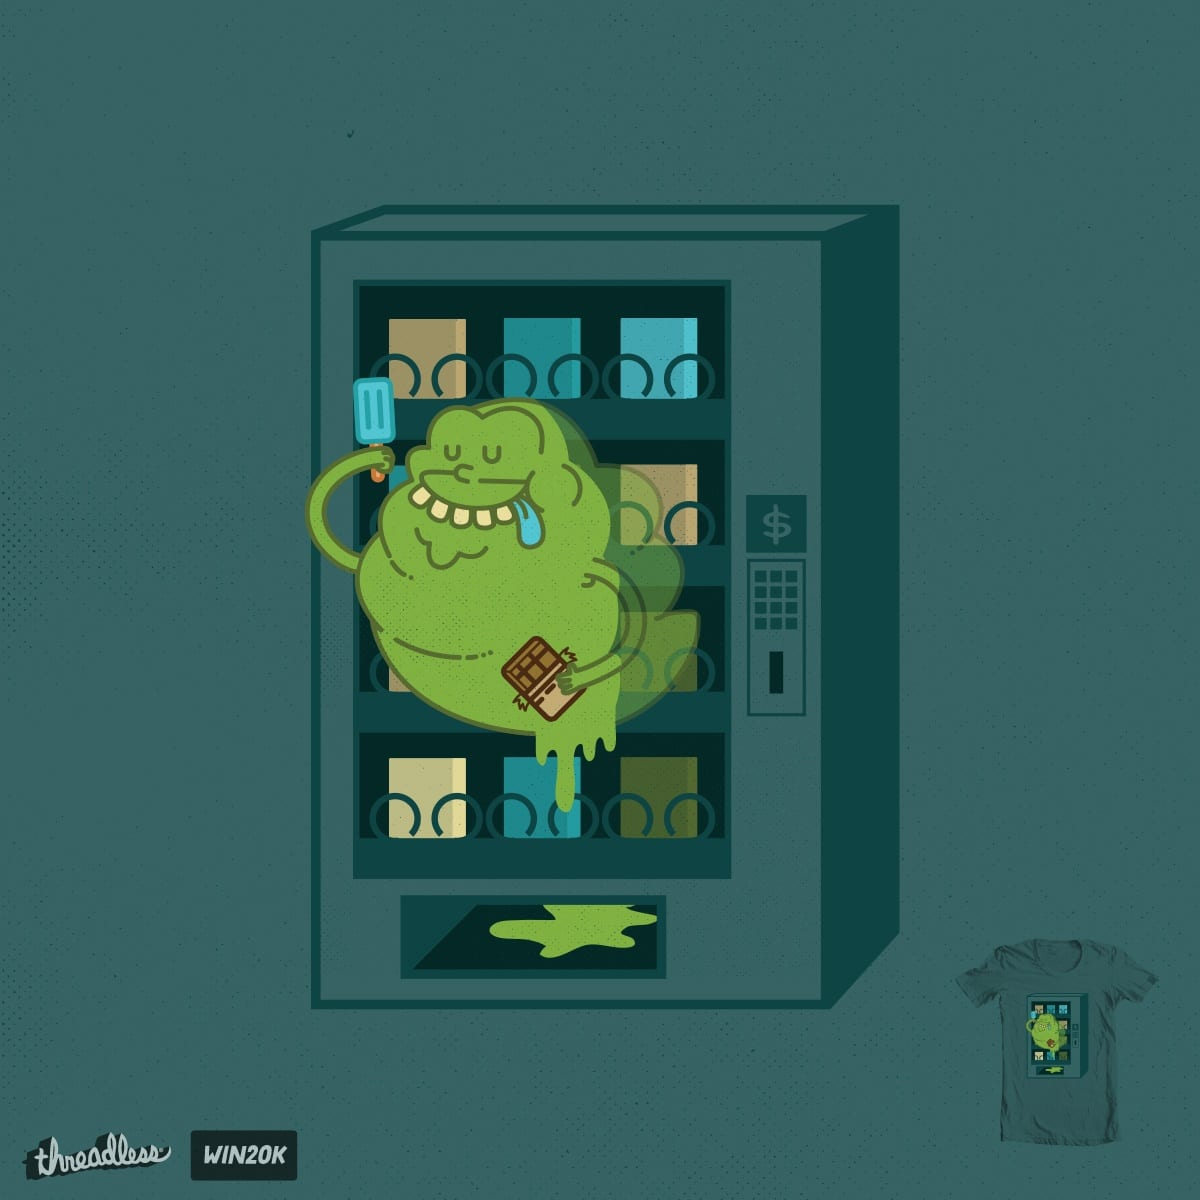 The Ghost in the Machine by ppmid on Threadless